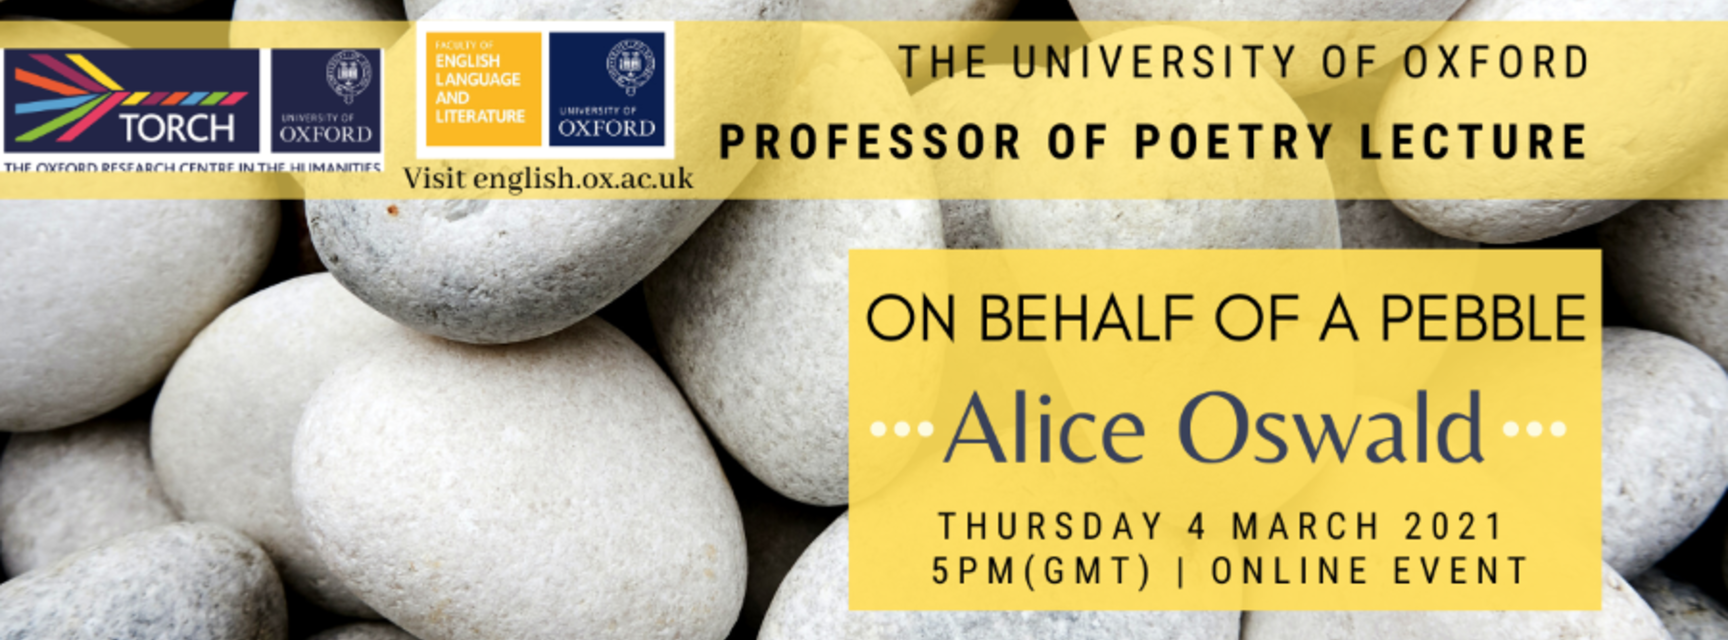 Background is light grey pebbles, close up. Yellow overlays contain text reading 'The University of Oxford Professor of Poetry Lecture. On Behalf of a Pebble. Alice Oswald. Thursday 4 March 2021, 5pm GMT, online event.' Logos for TORCH and English Faculty